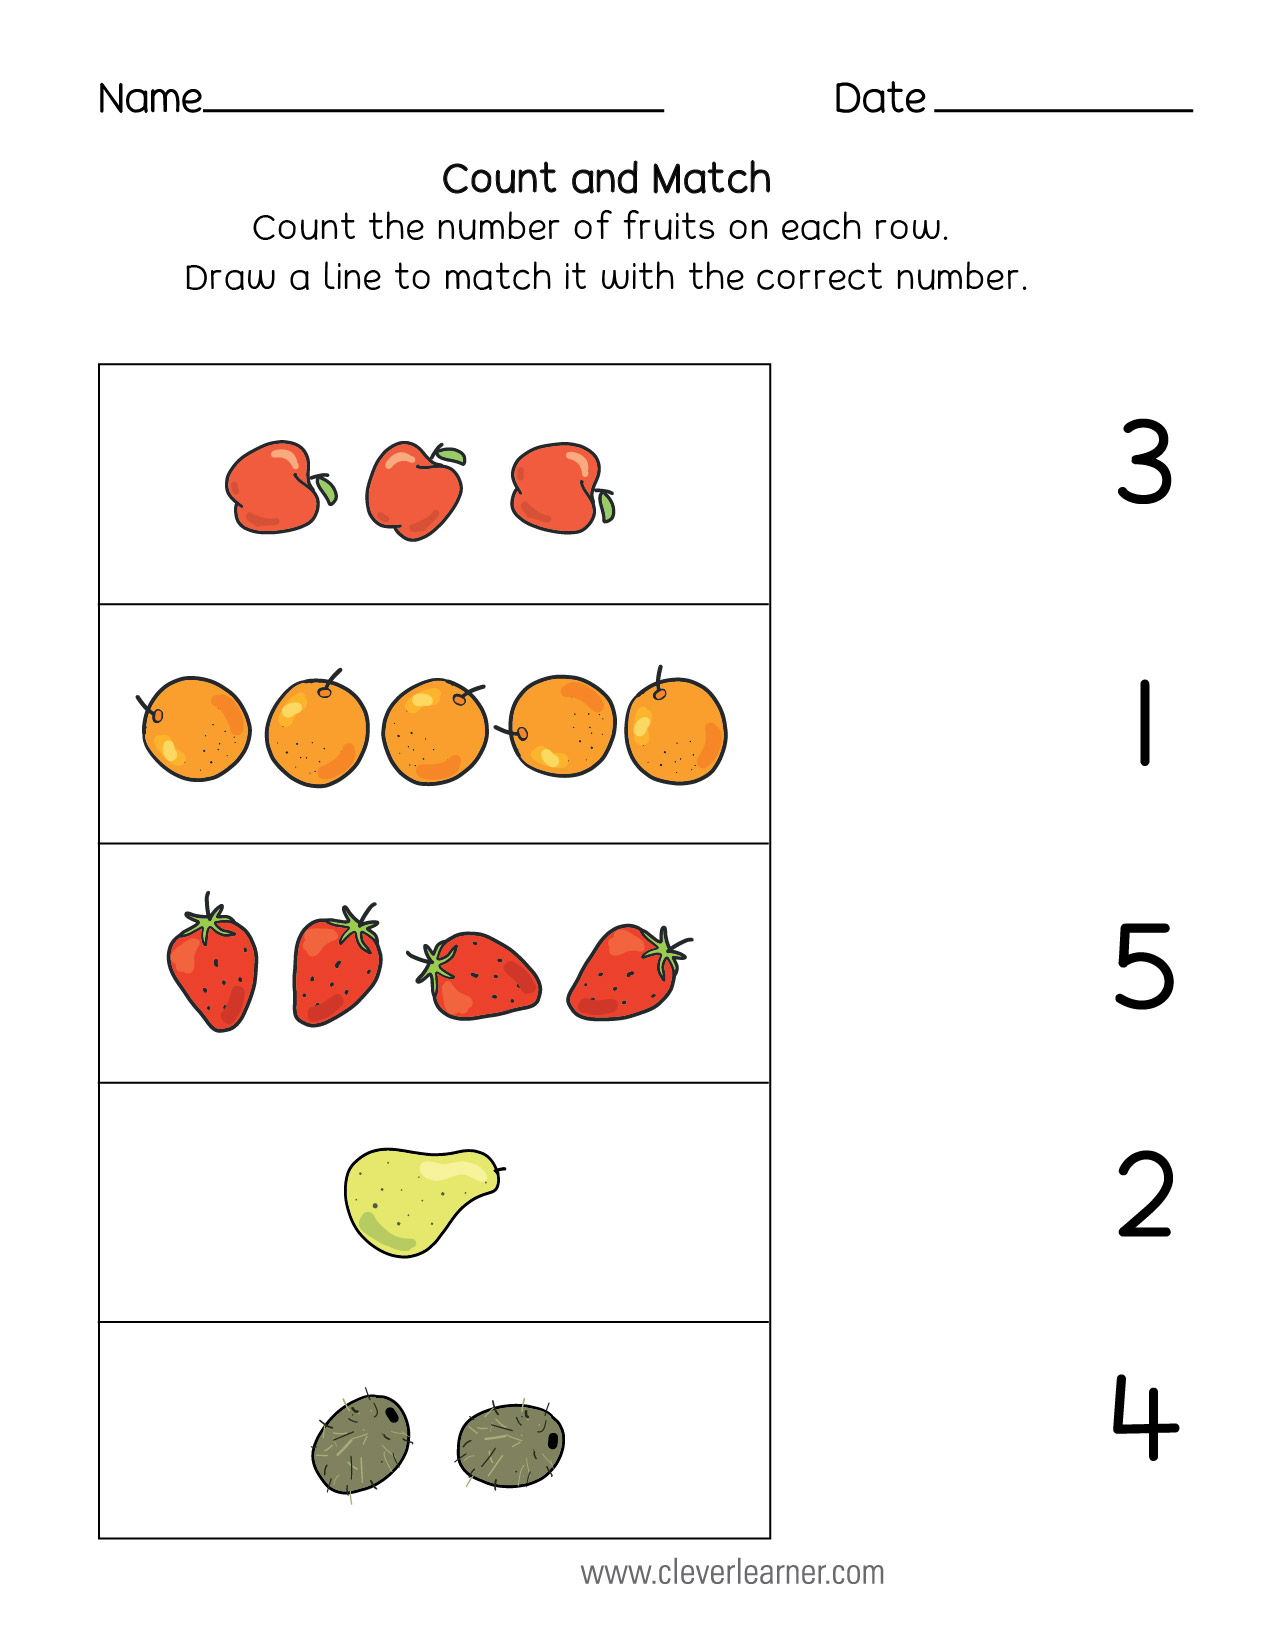 Worksheet Match Number